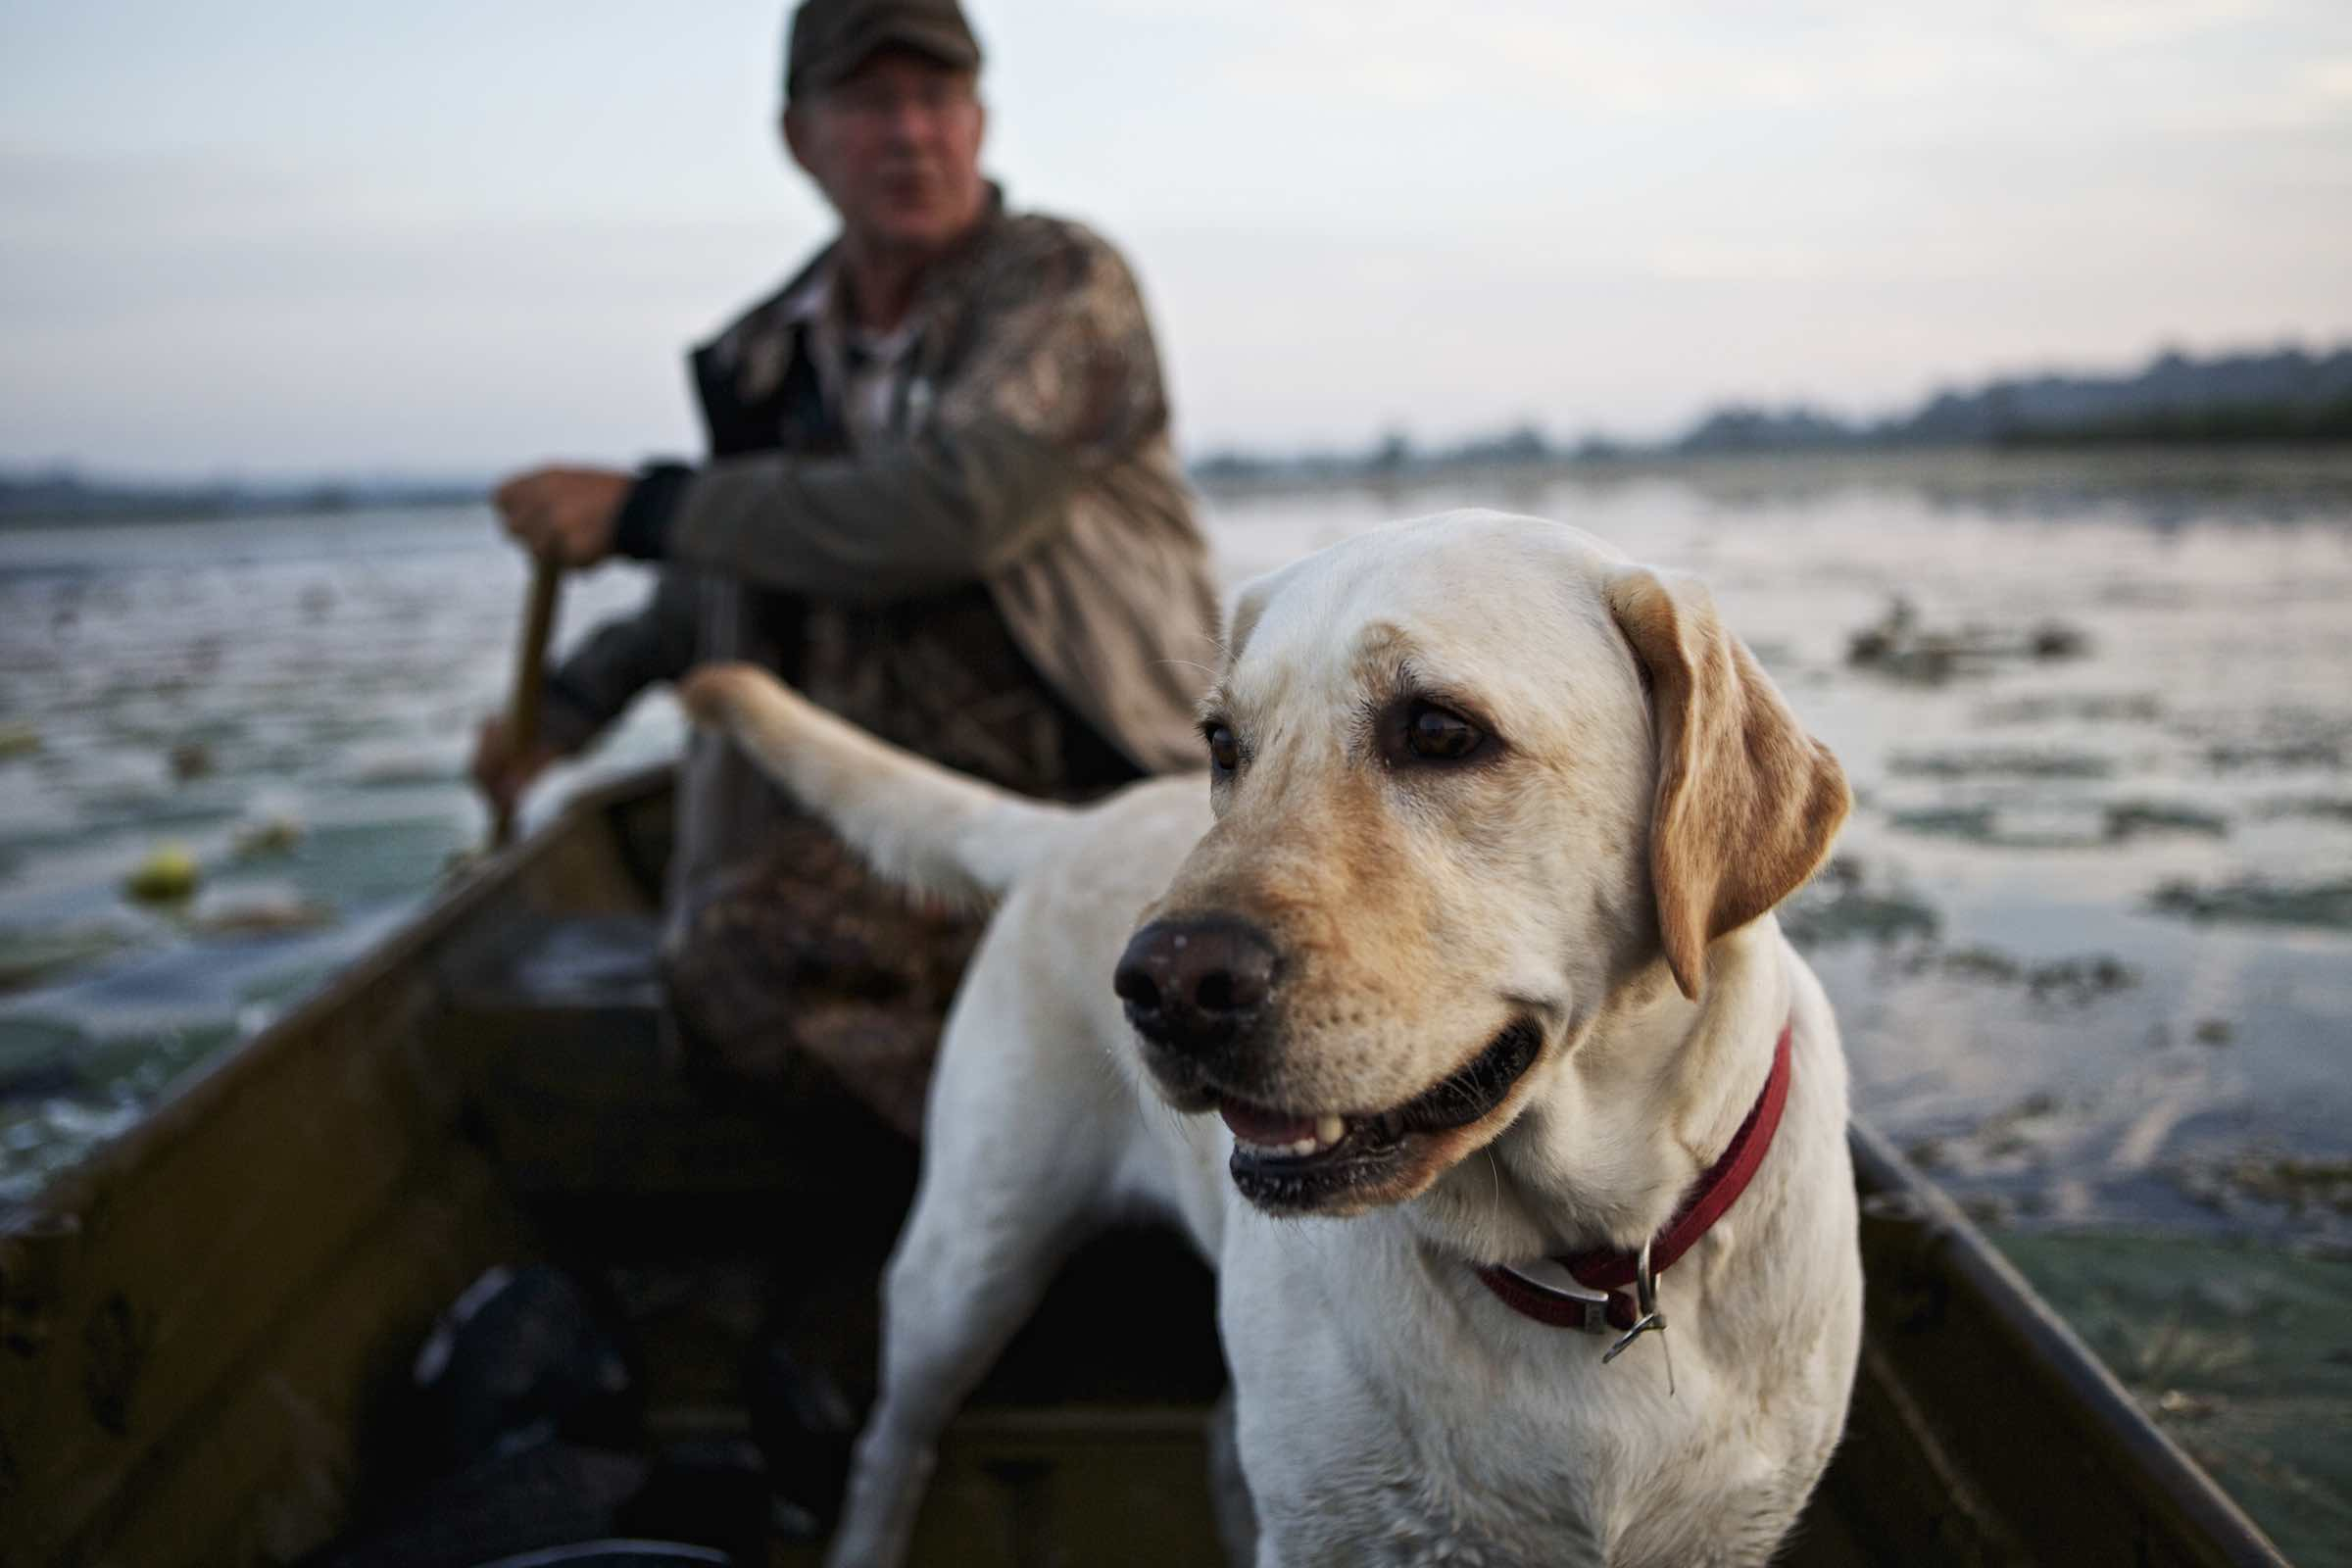 Hunter and his yellow lab rowing across the water.